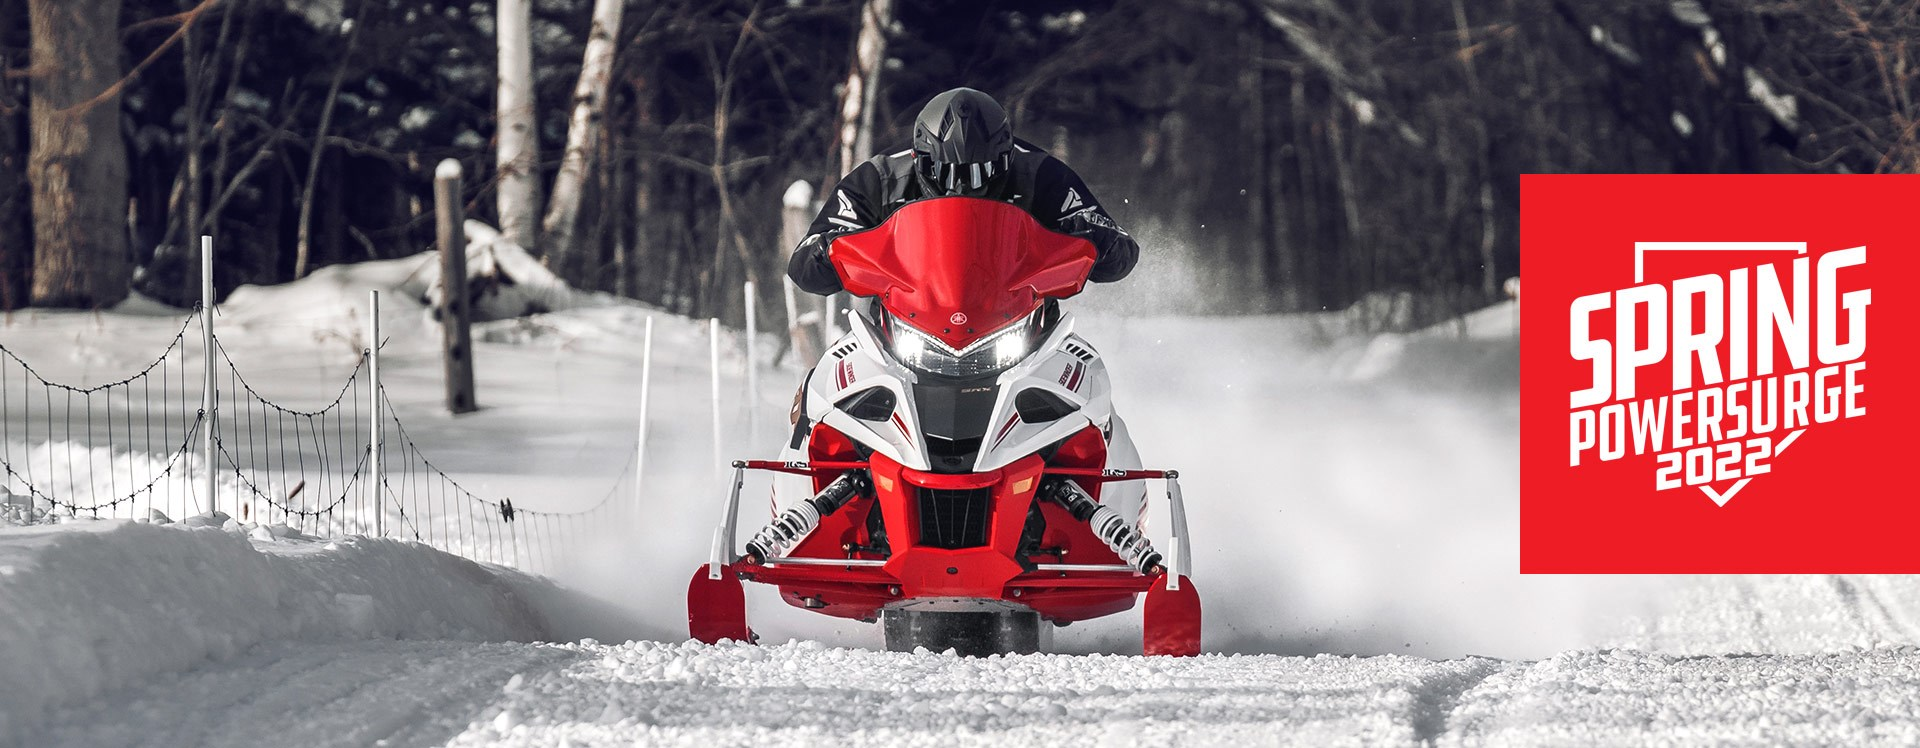 Yamaha Snowmobile Specials